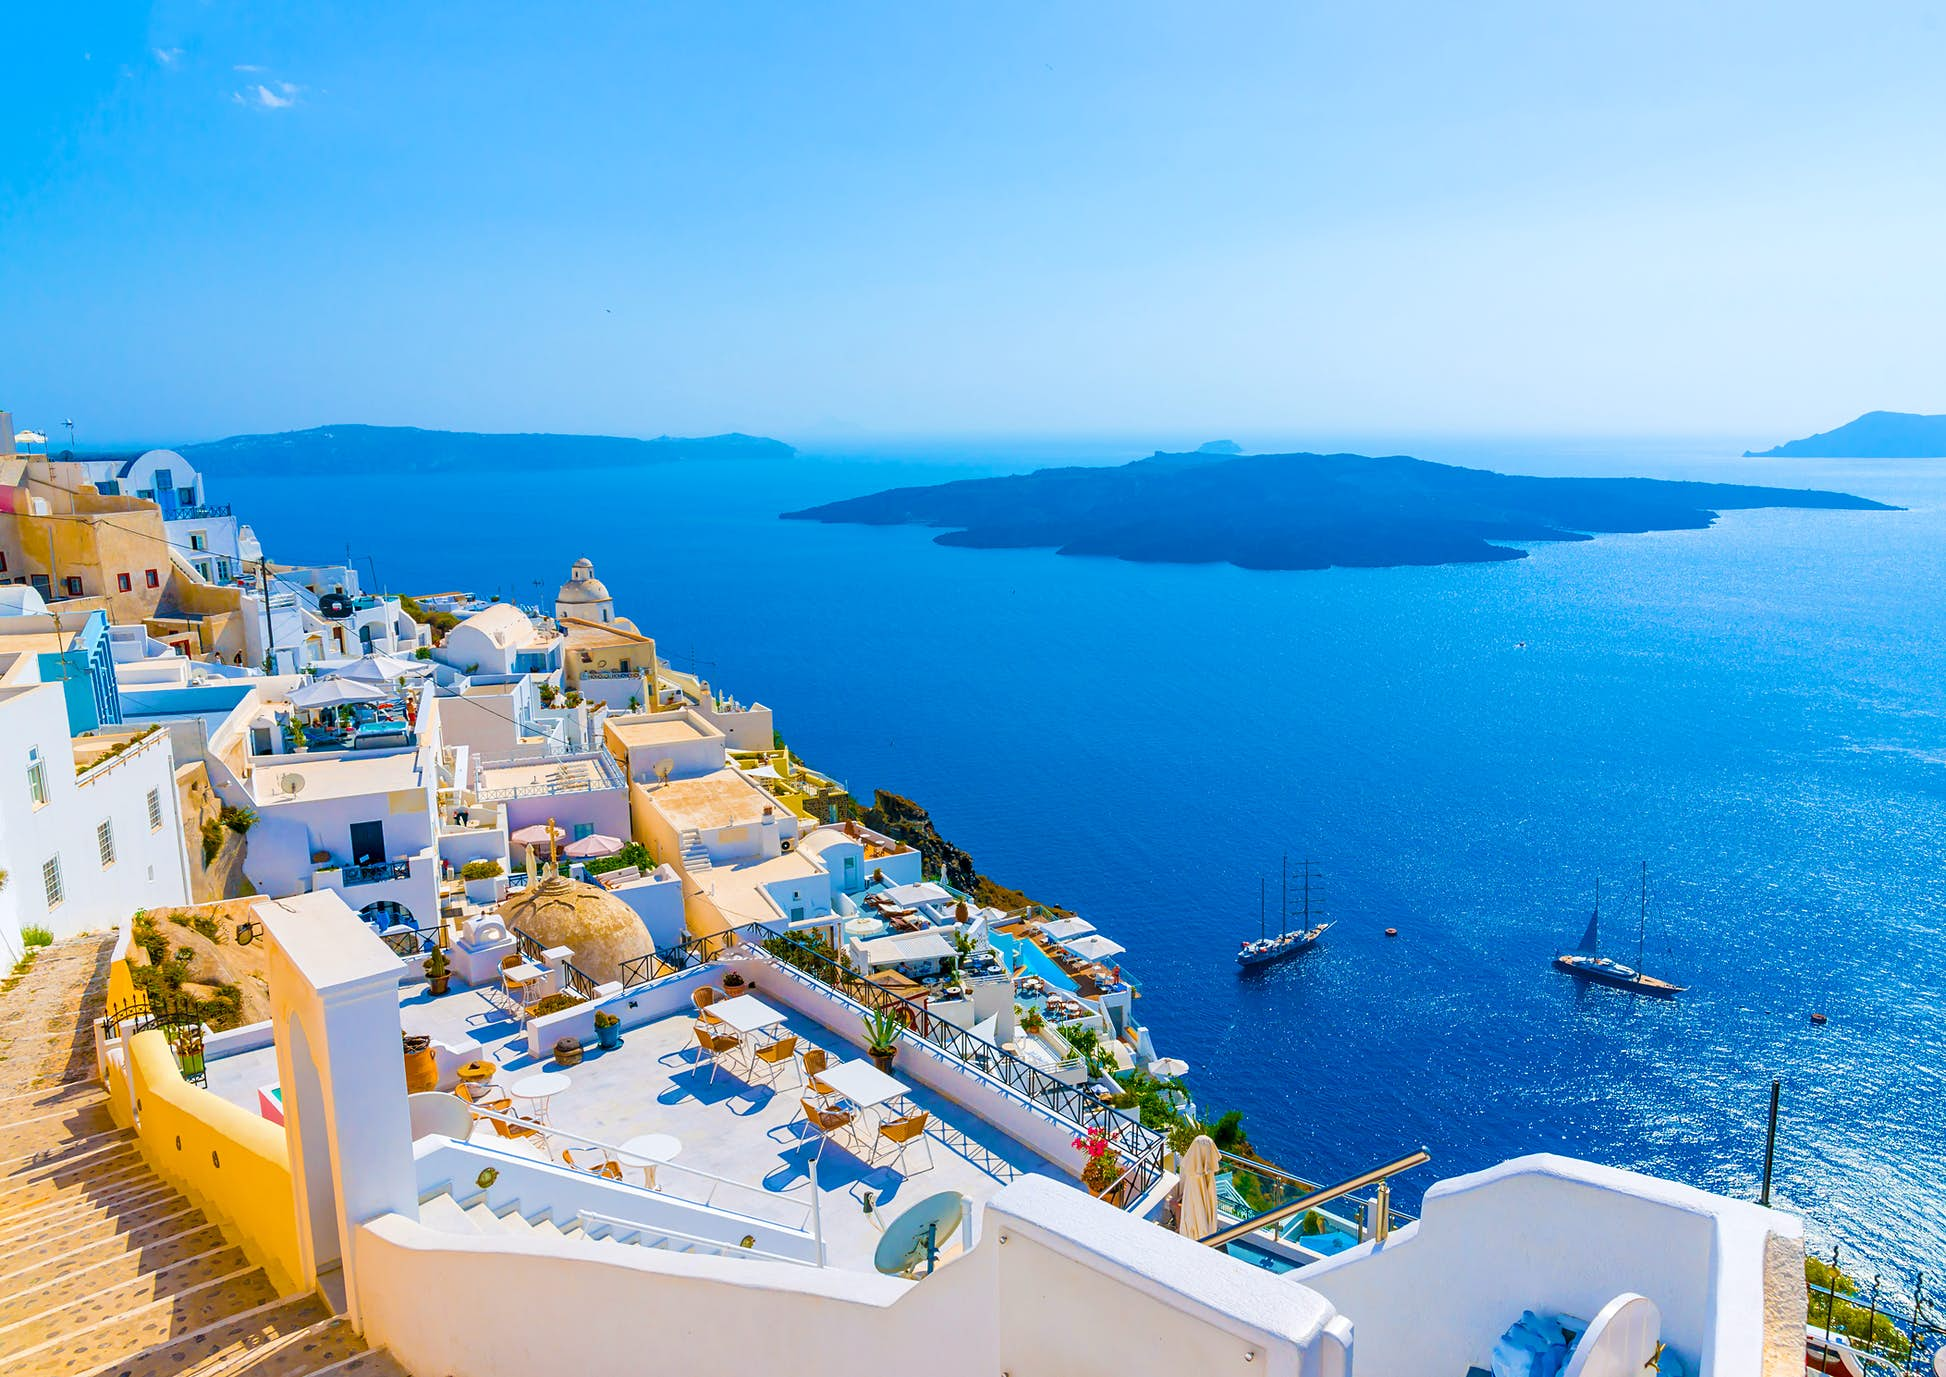 Greece has begun to reopen its hospitality and tourism sectors ©imagIN.gr photography/Shutterstock